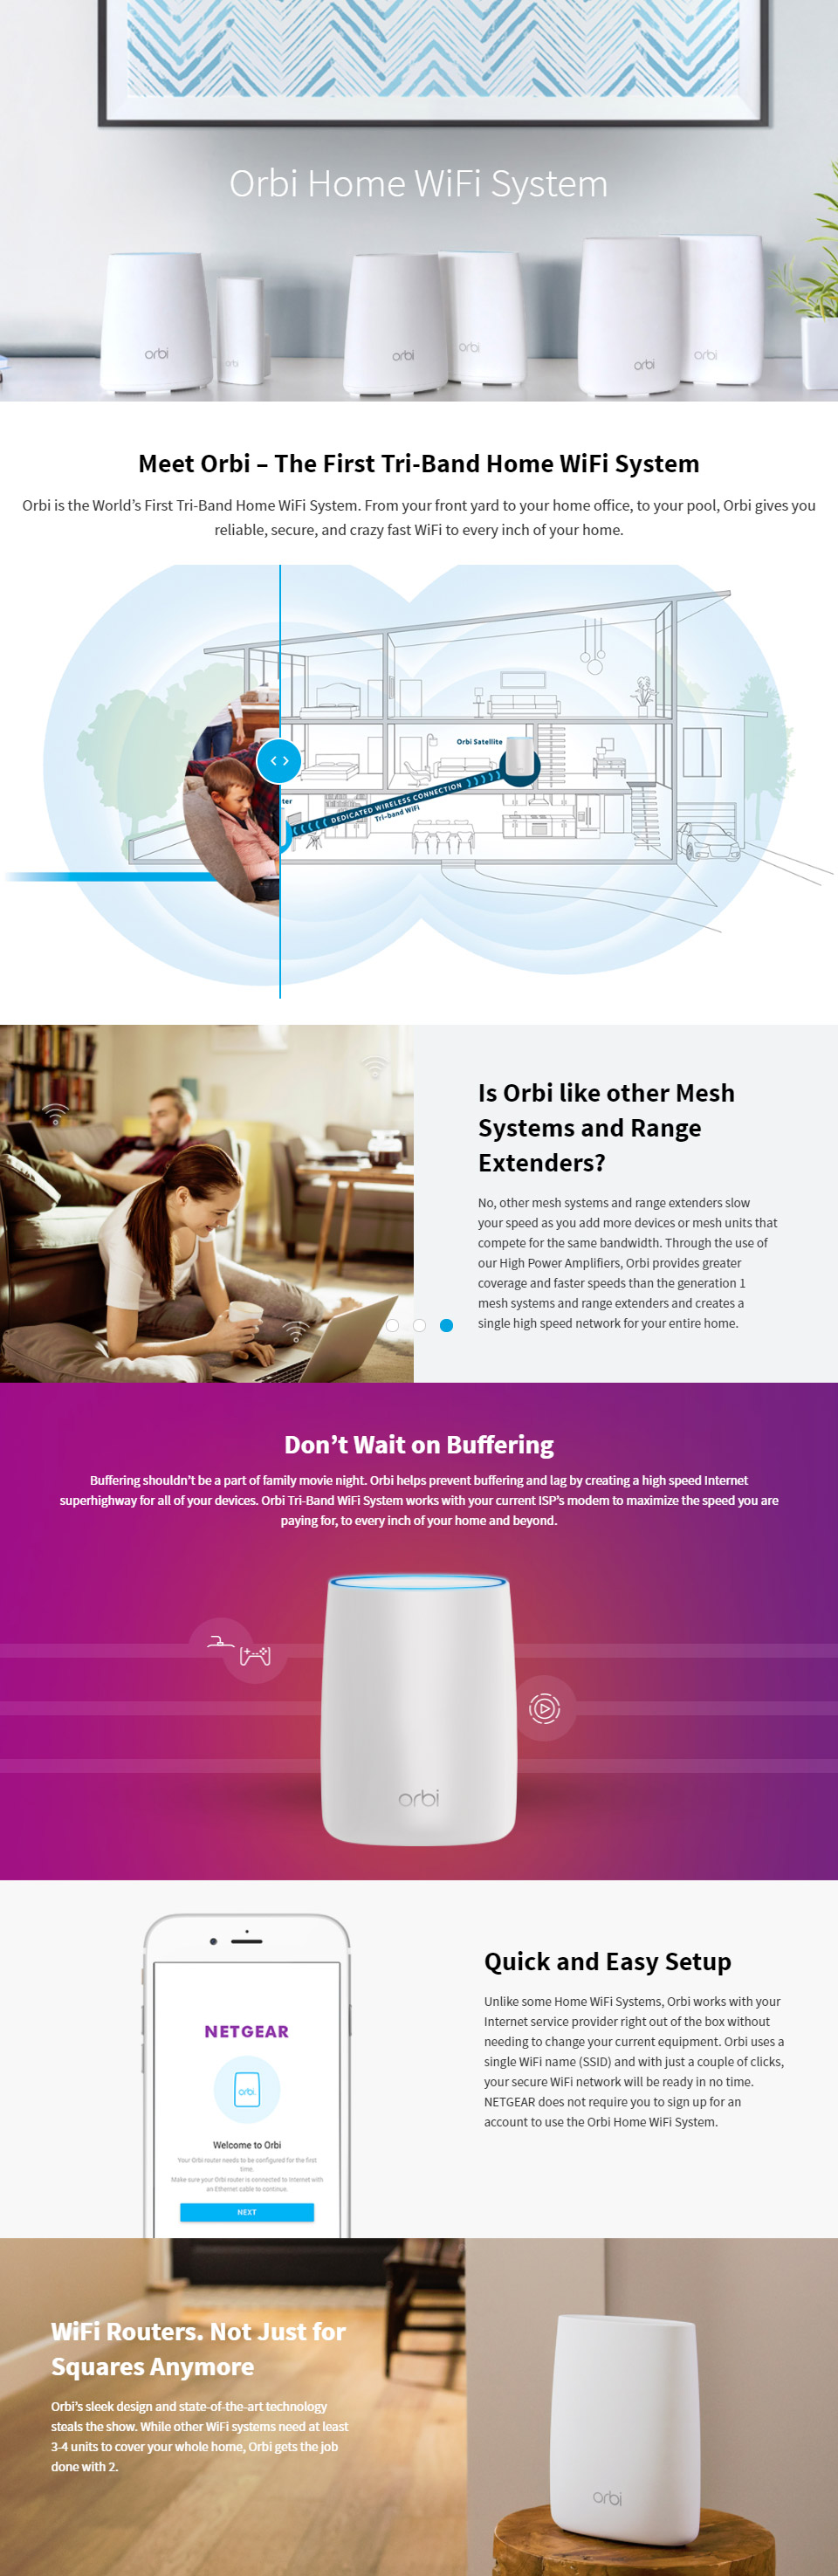 Netgear Orbi RBK40 AC2200 Whole Home Tri-Band WiFi System